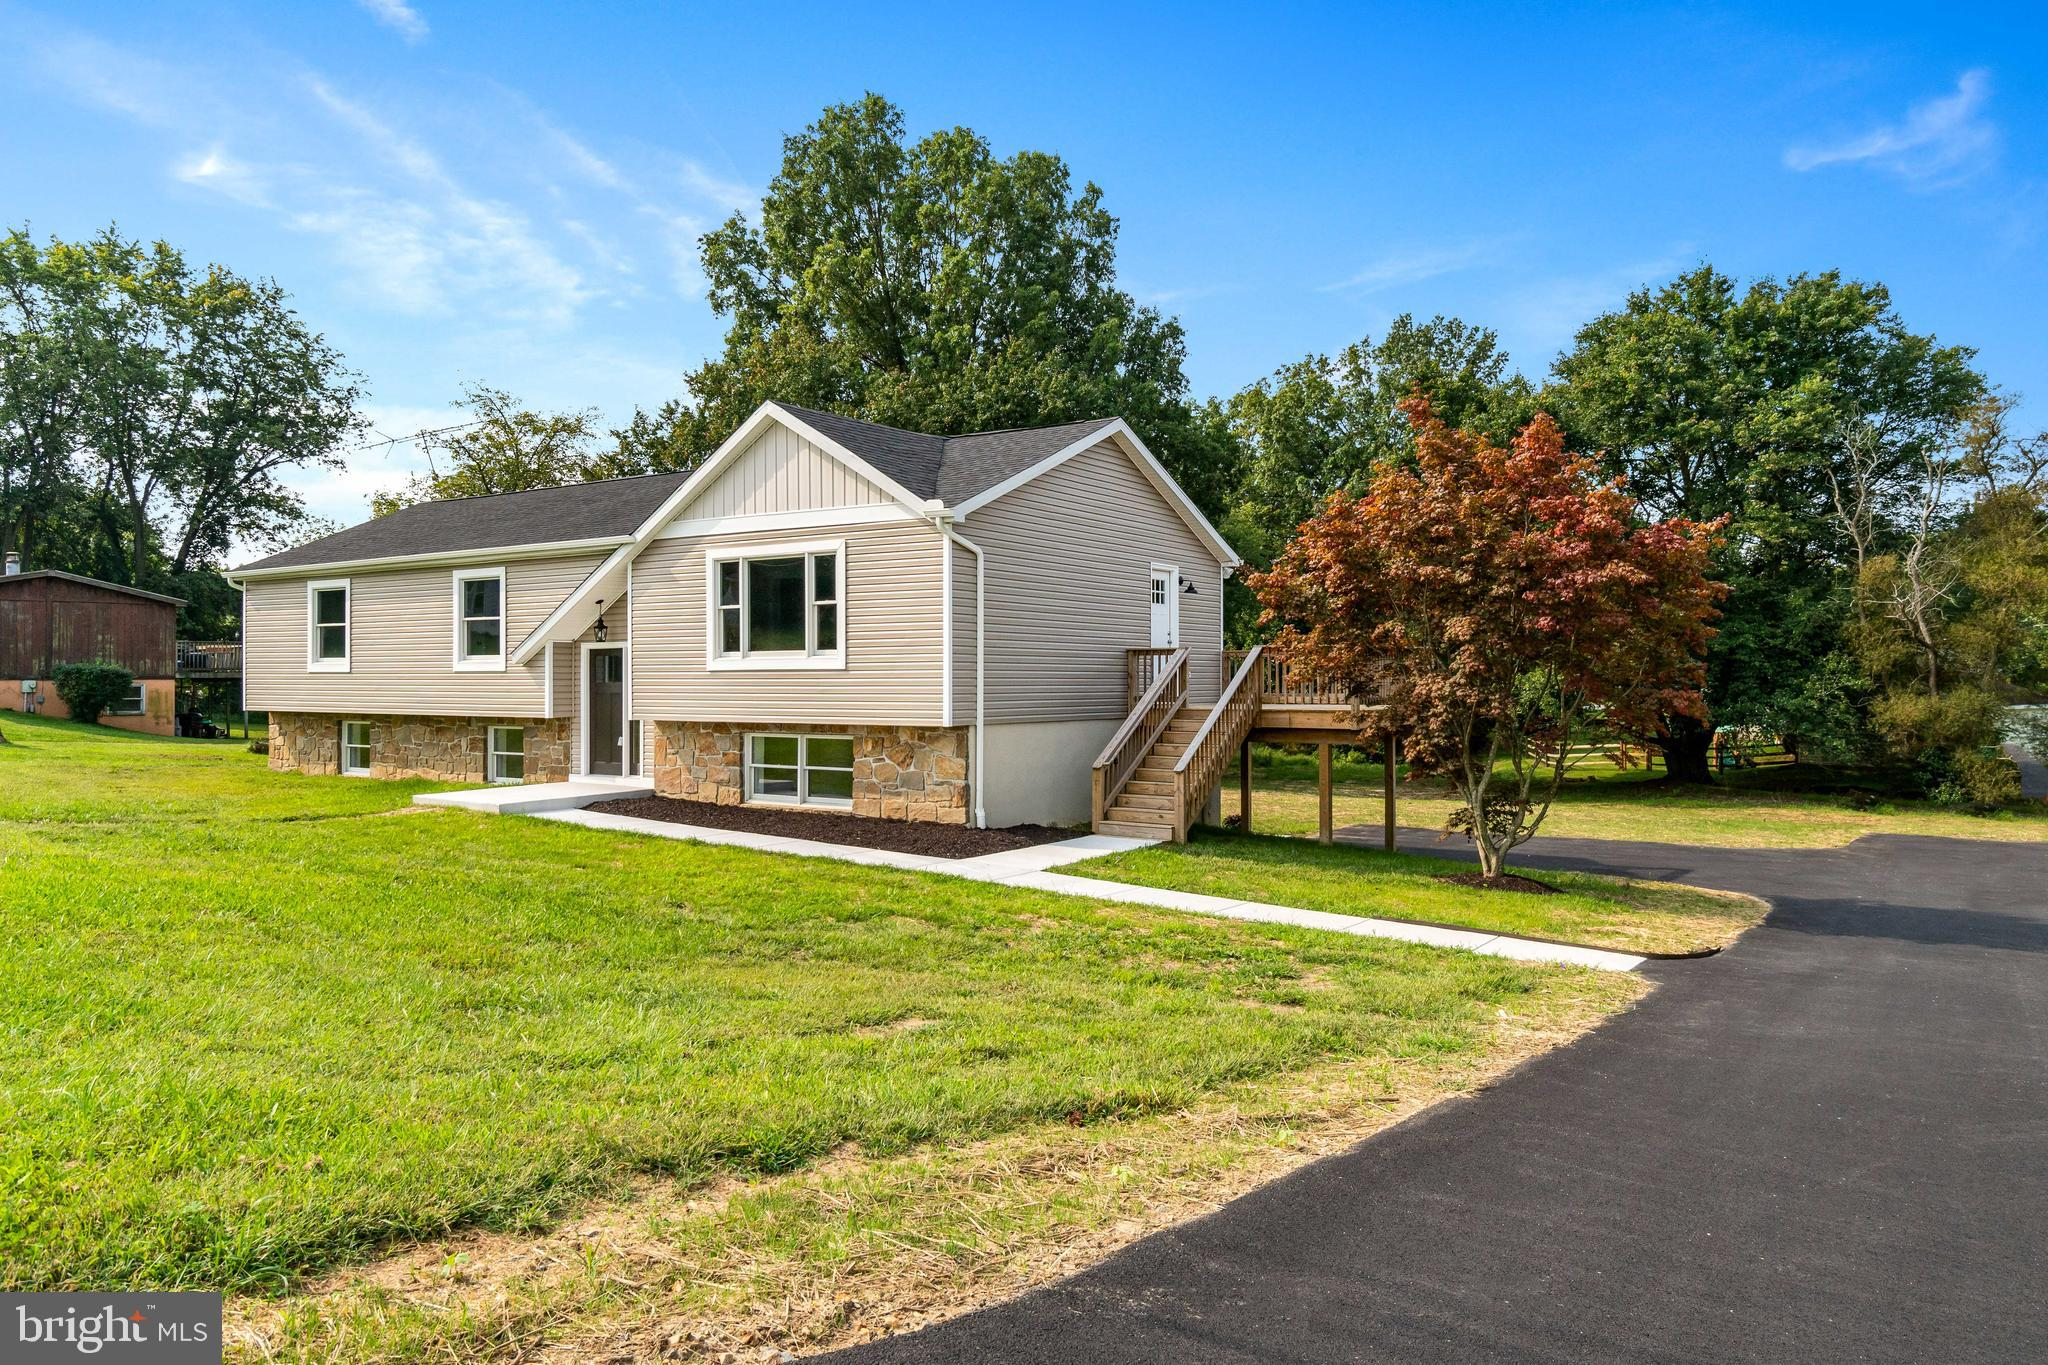 Completely renovated inside and out with upgrades galore!  All new appliances, two new full bathroom